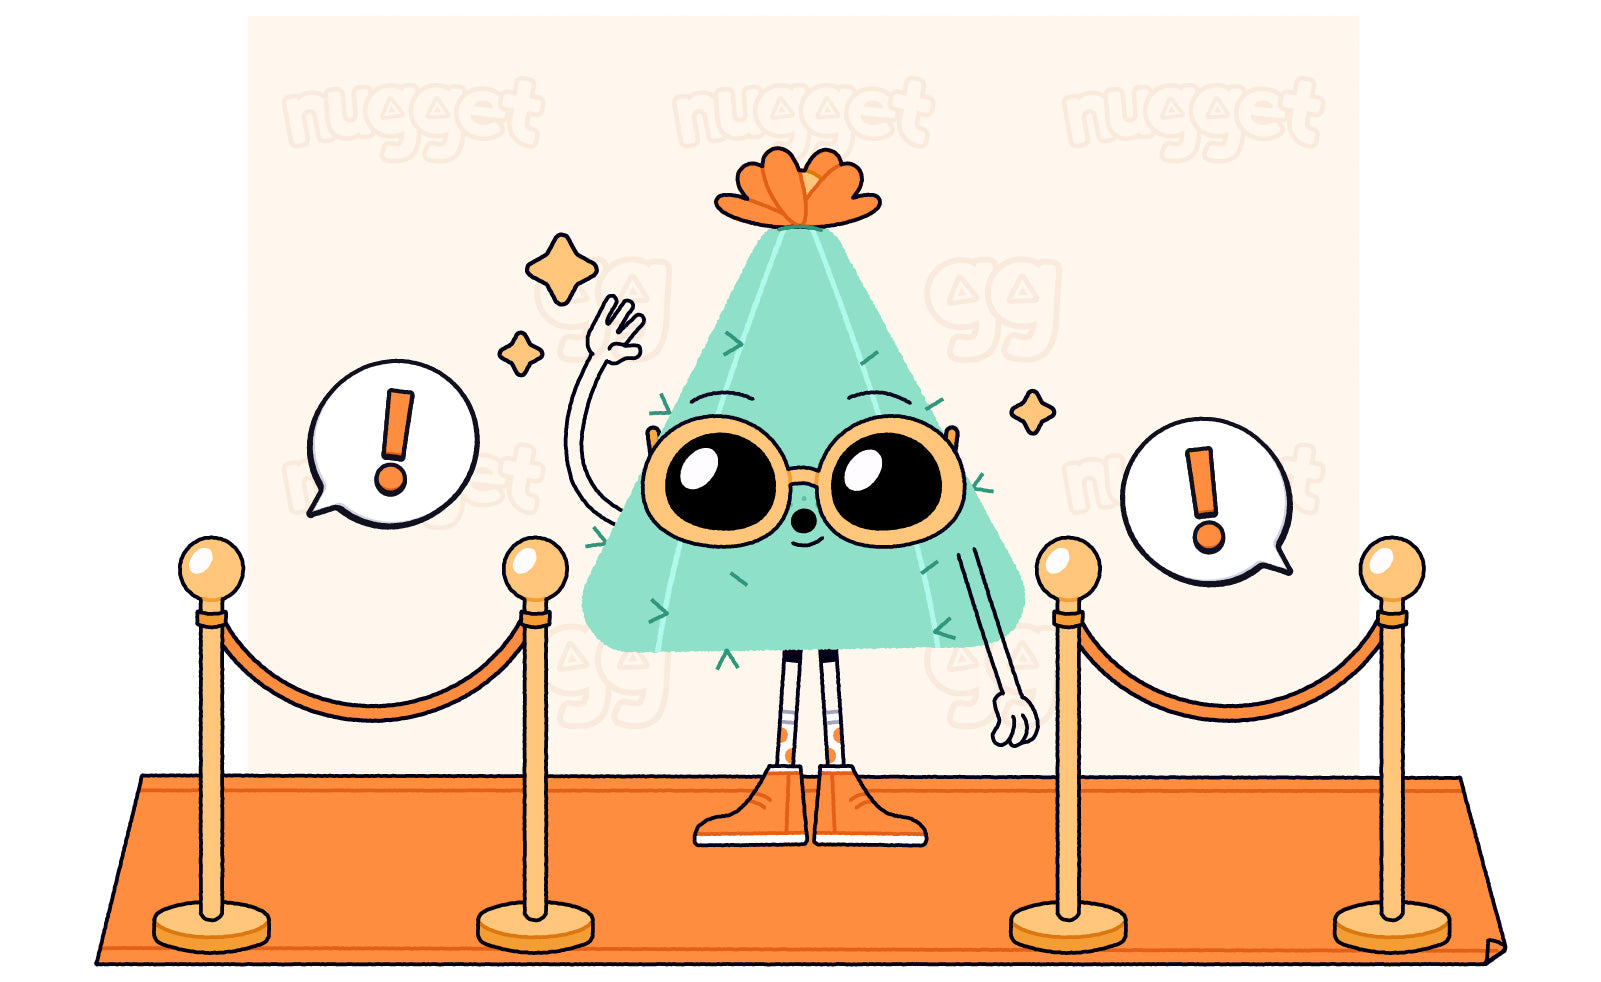 Cactus Nugget triangle character standing on orange carpet, waving at paparazzi